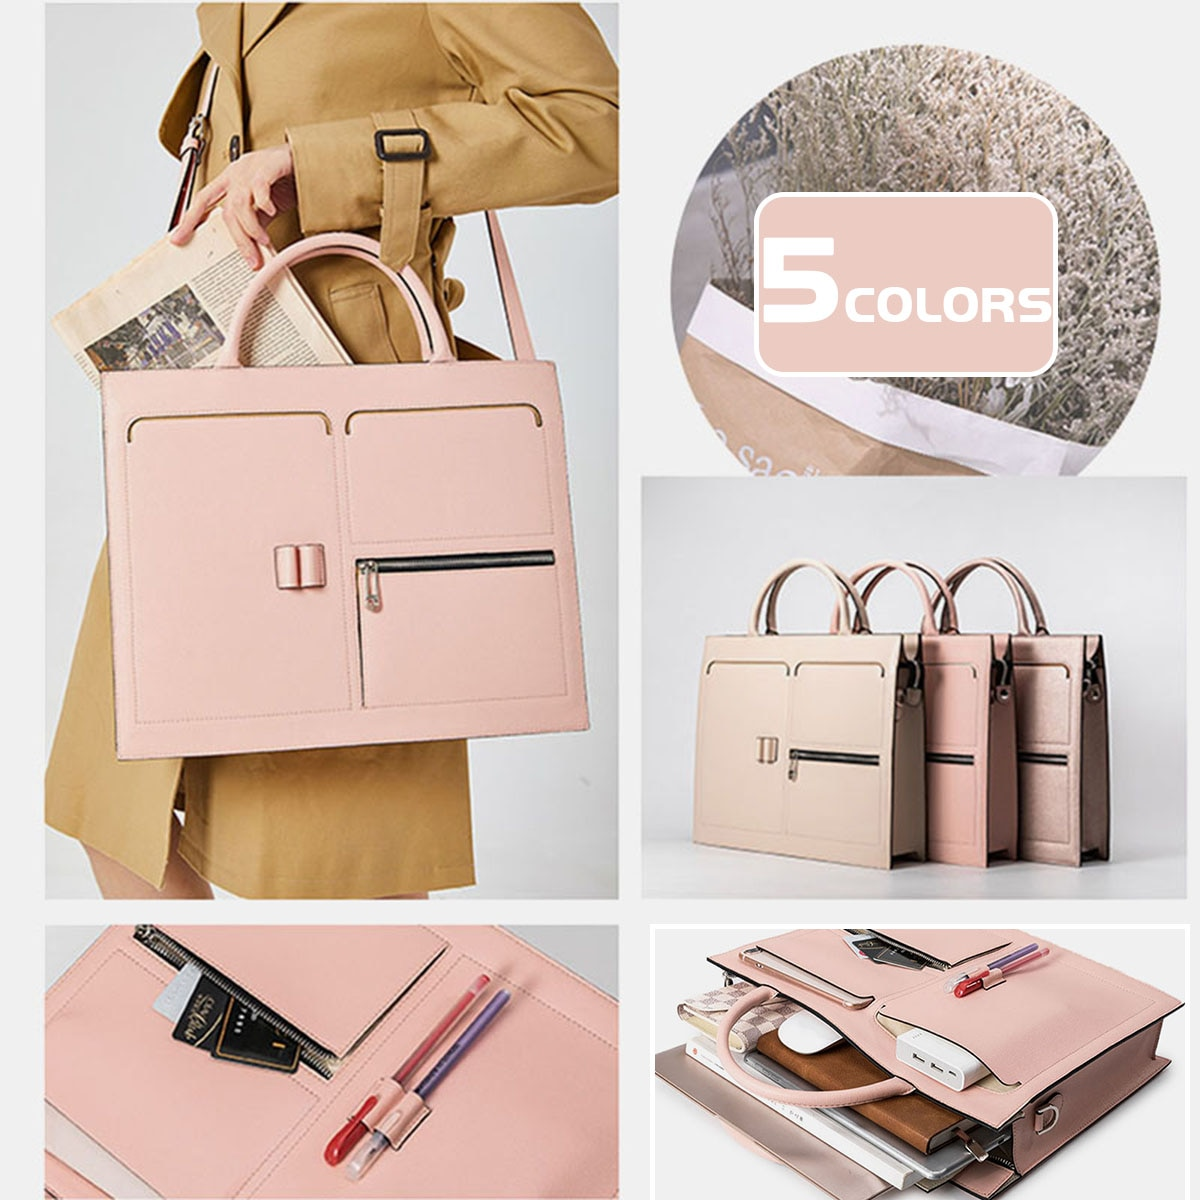 Luxury Leather Women Laptop Bag Notebook Carrying Case Briefcase for 13.3inch Computer Multifunction Handbags Shoulder Bag Totes